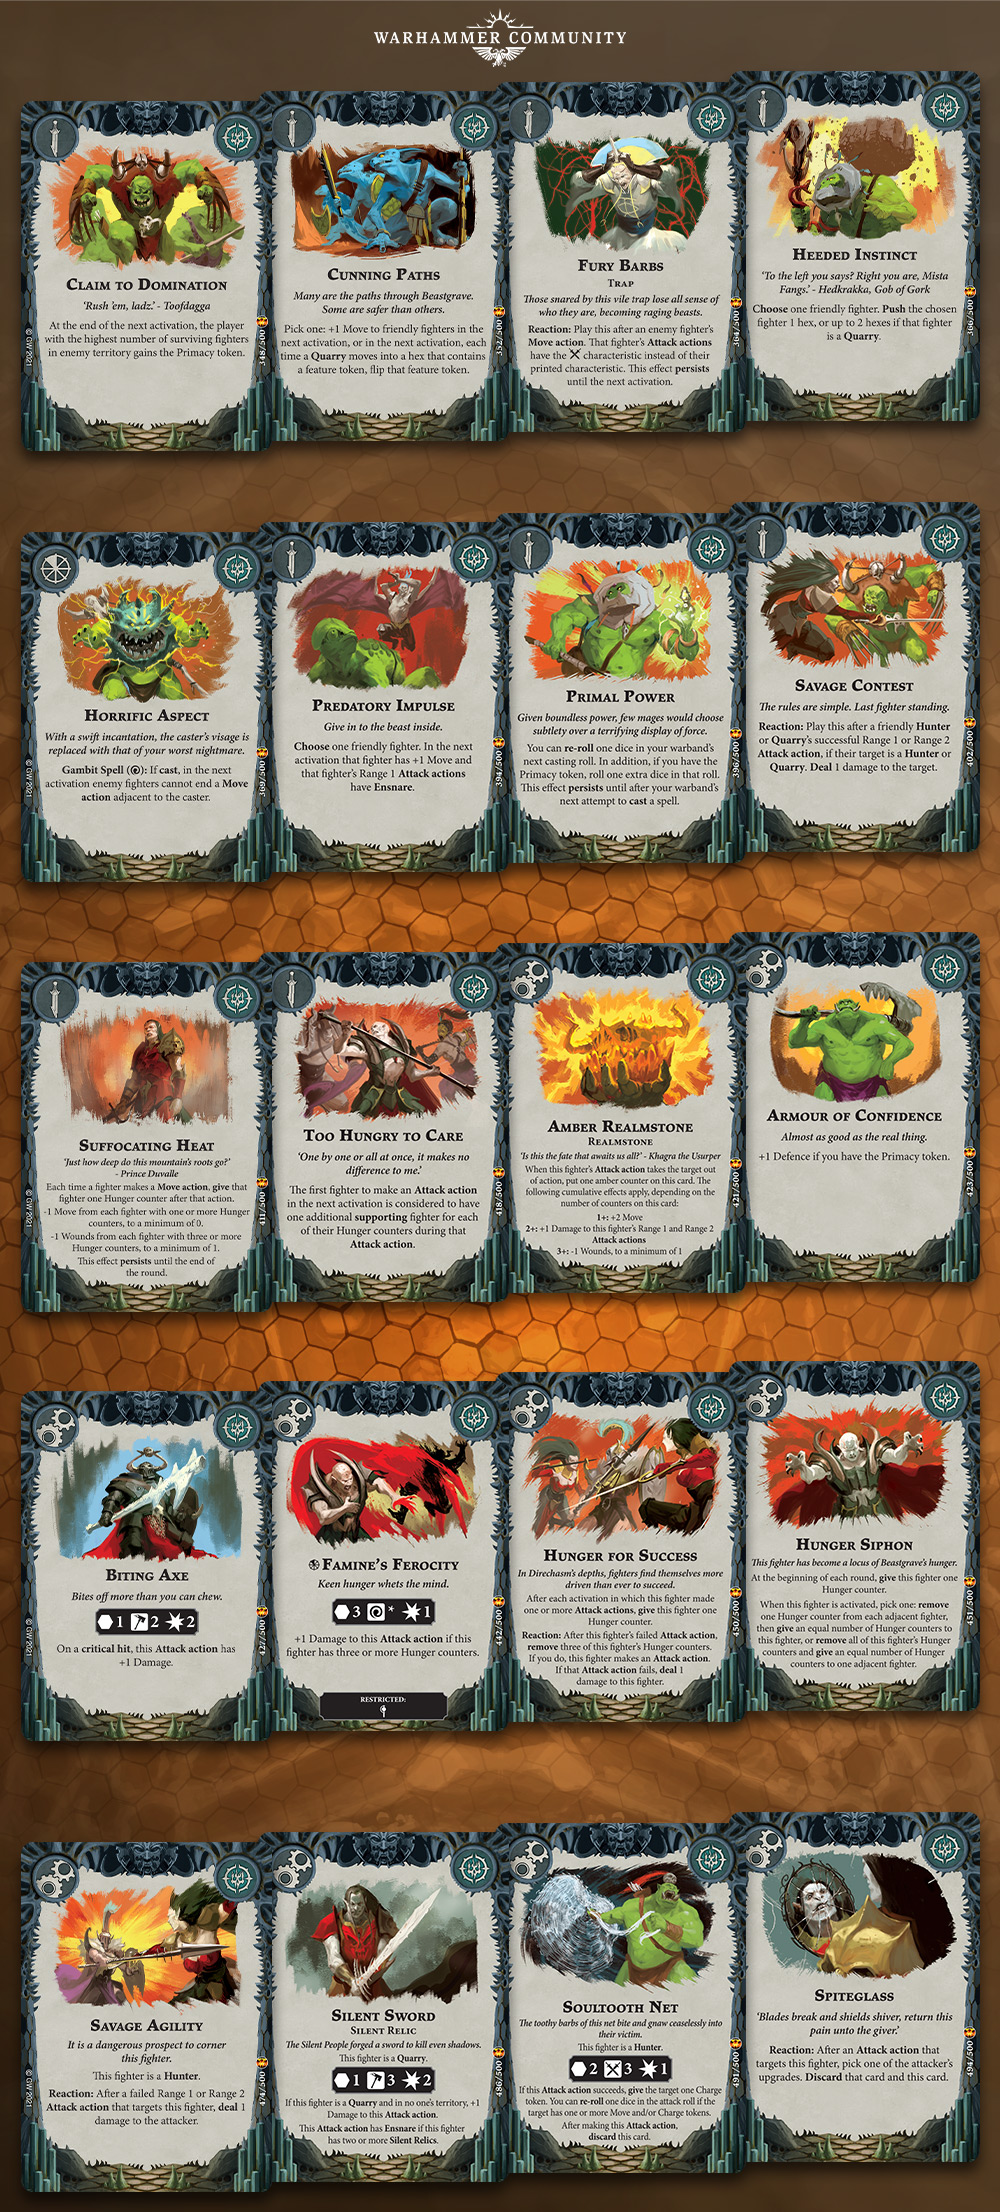 WHUW MadmobCards May4 Cardset3h